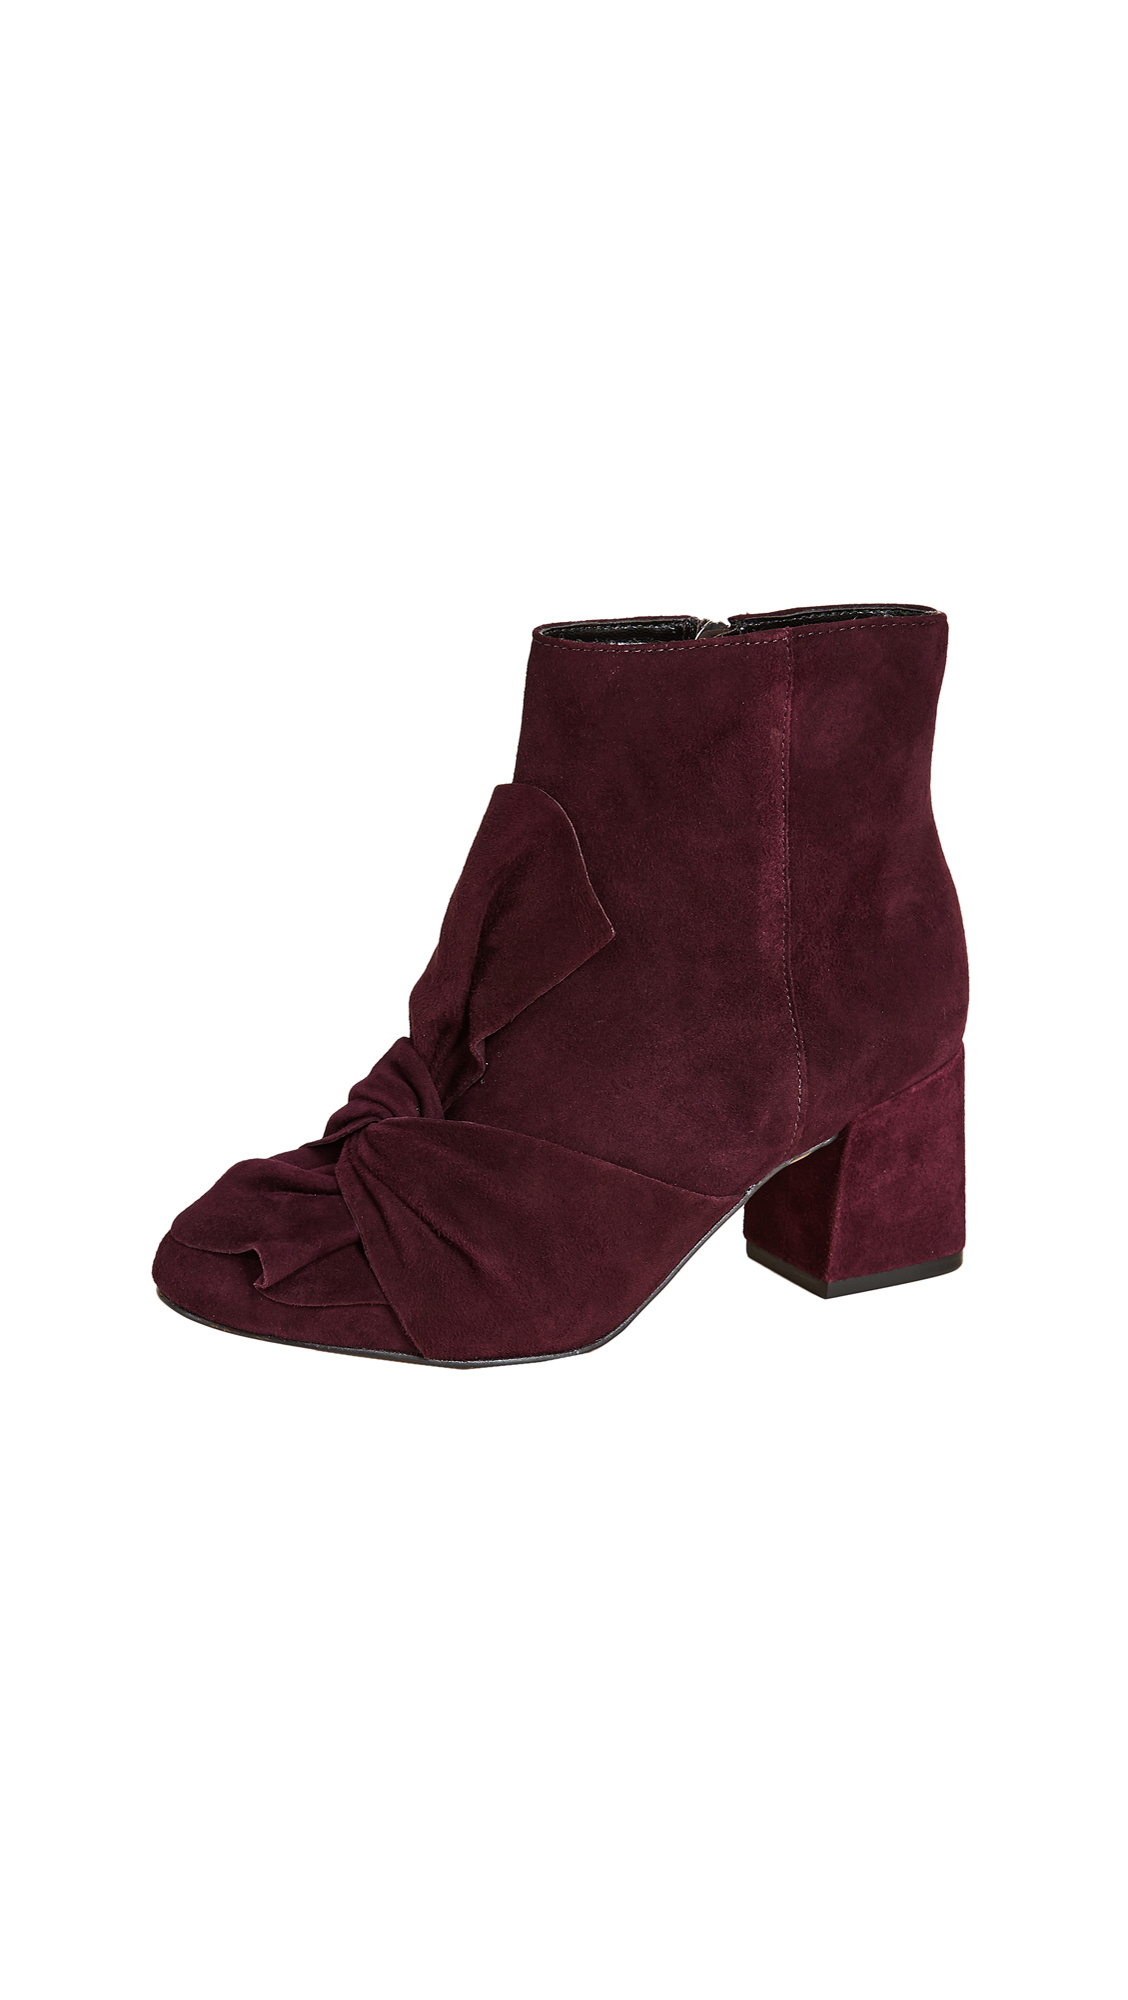 Rebecca Minkoff Lara Bow Booties - Dark Cherry